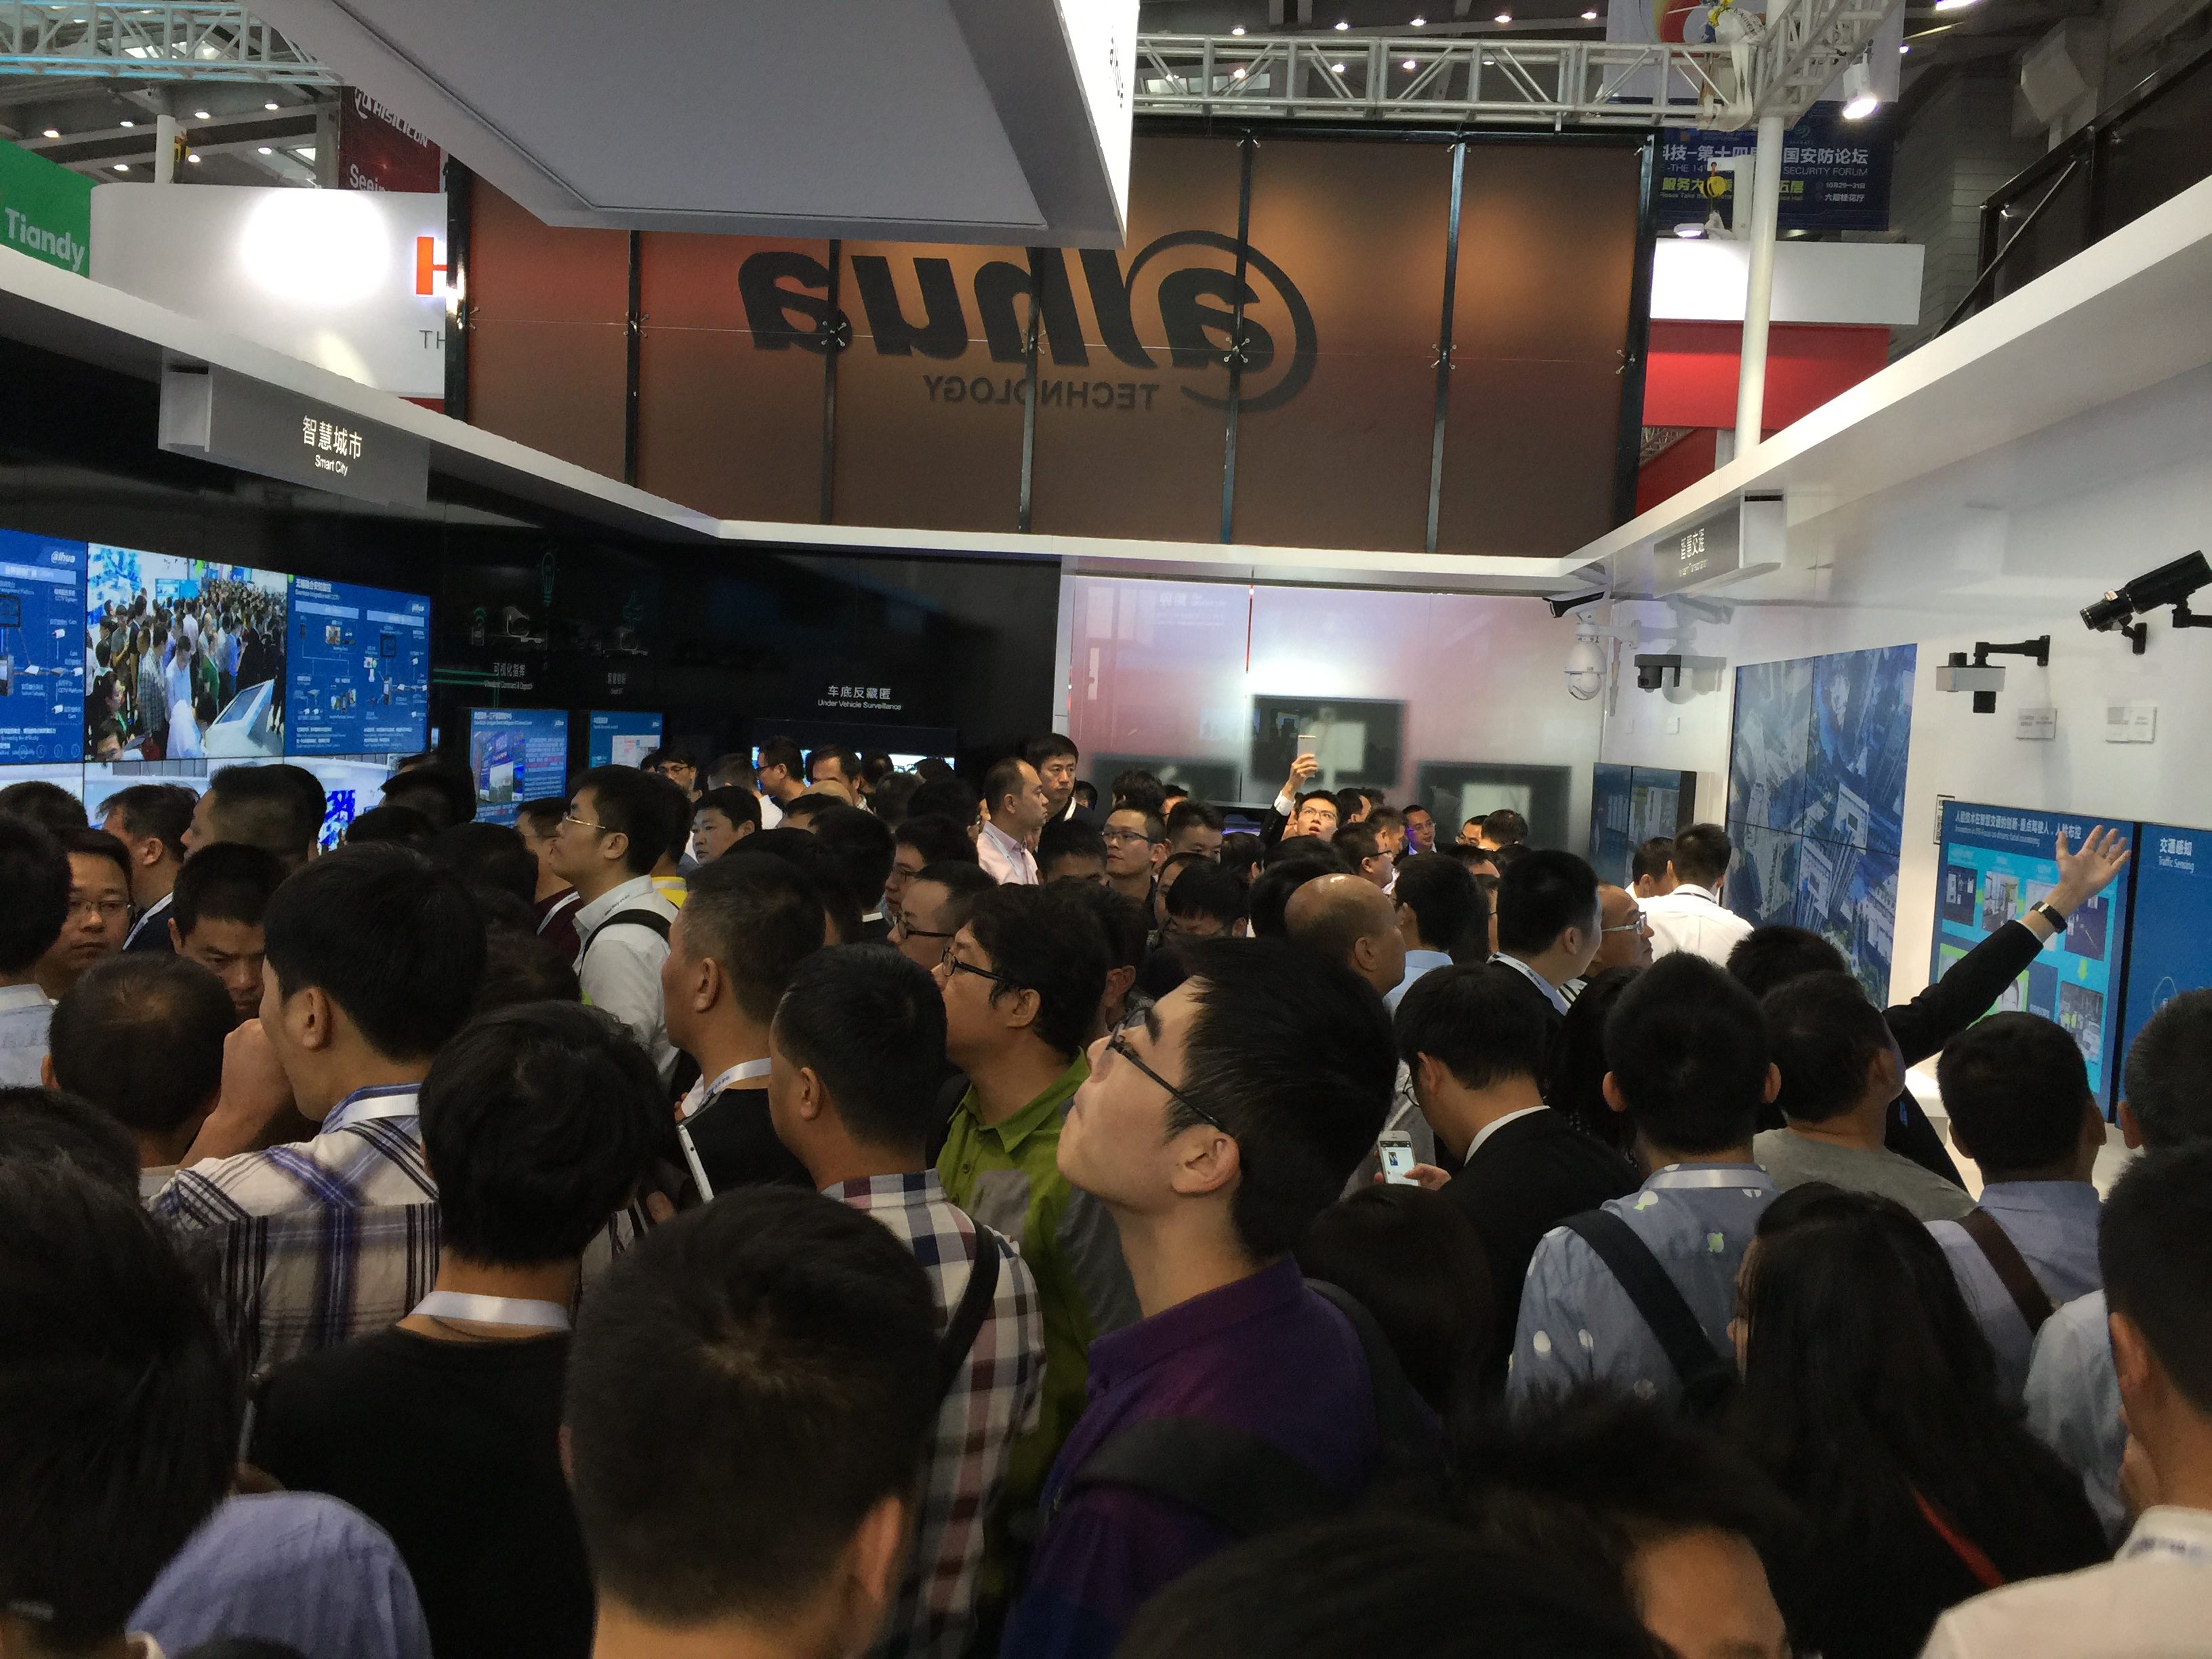 Inside the Dahua booth